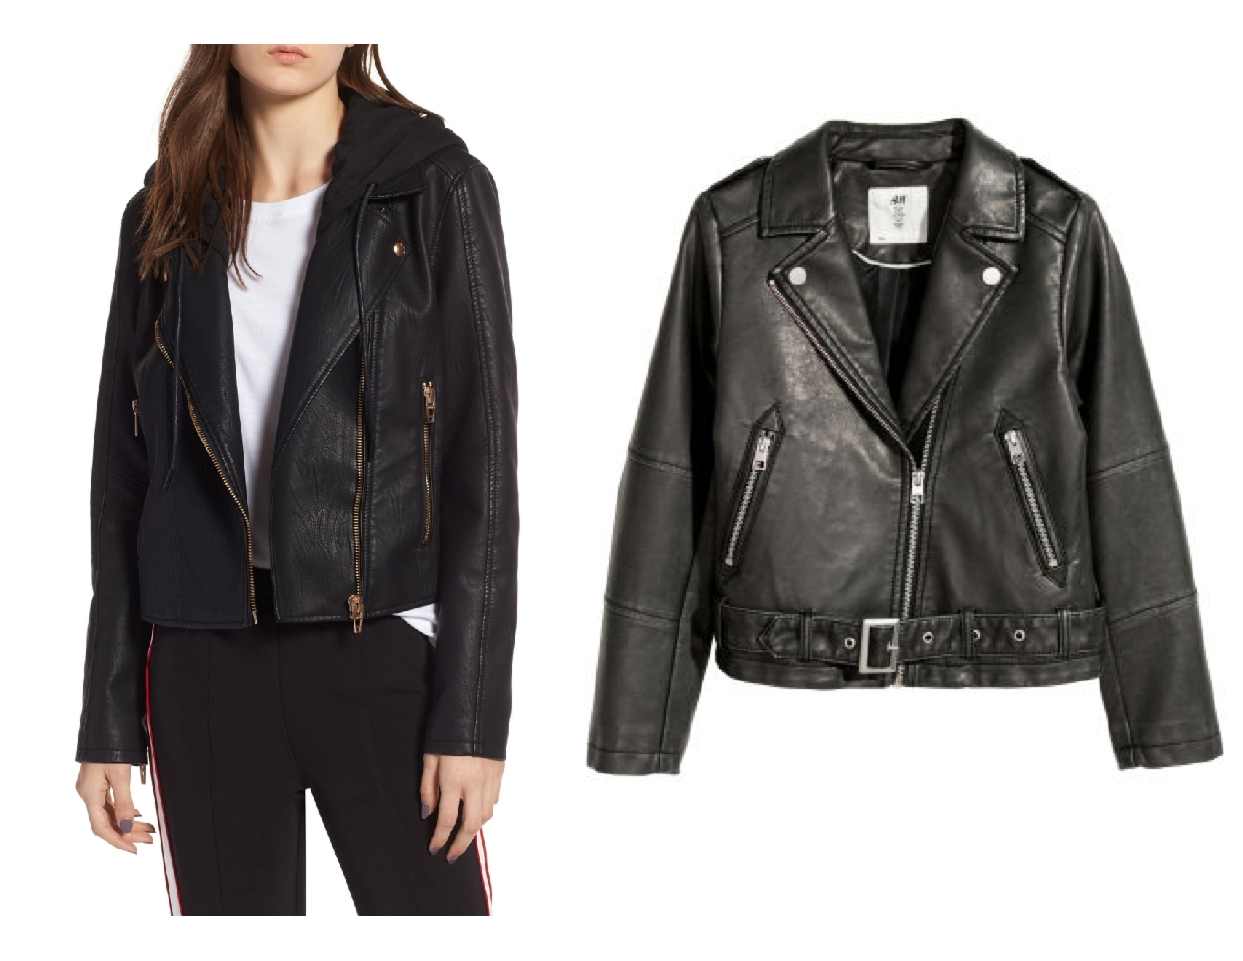 nordstrom anniversary sale dupes, black moto jacket